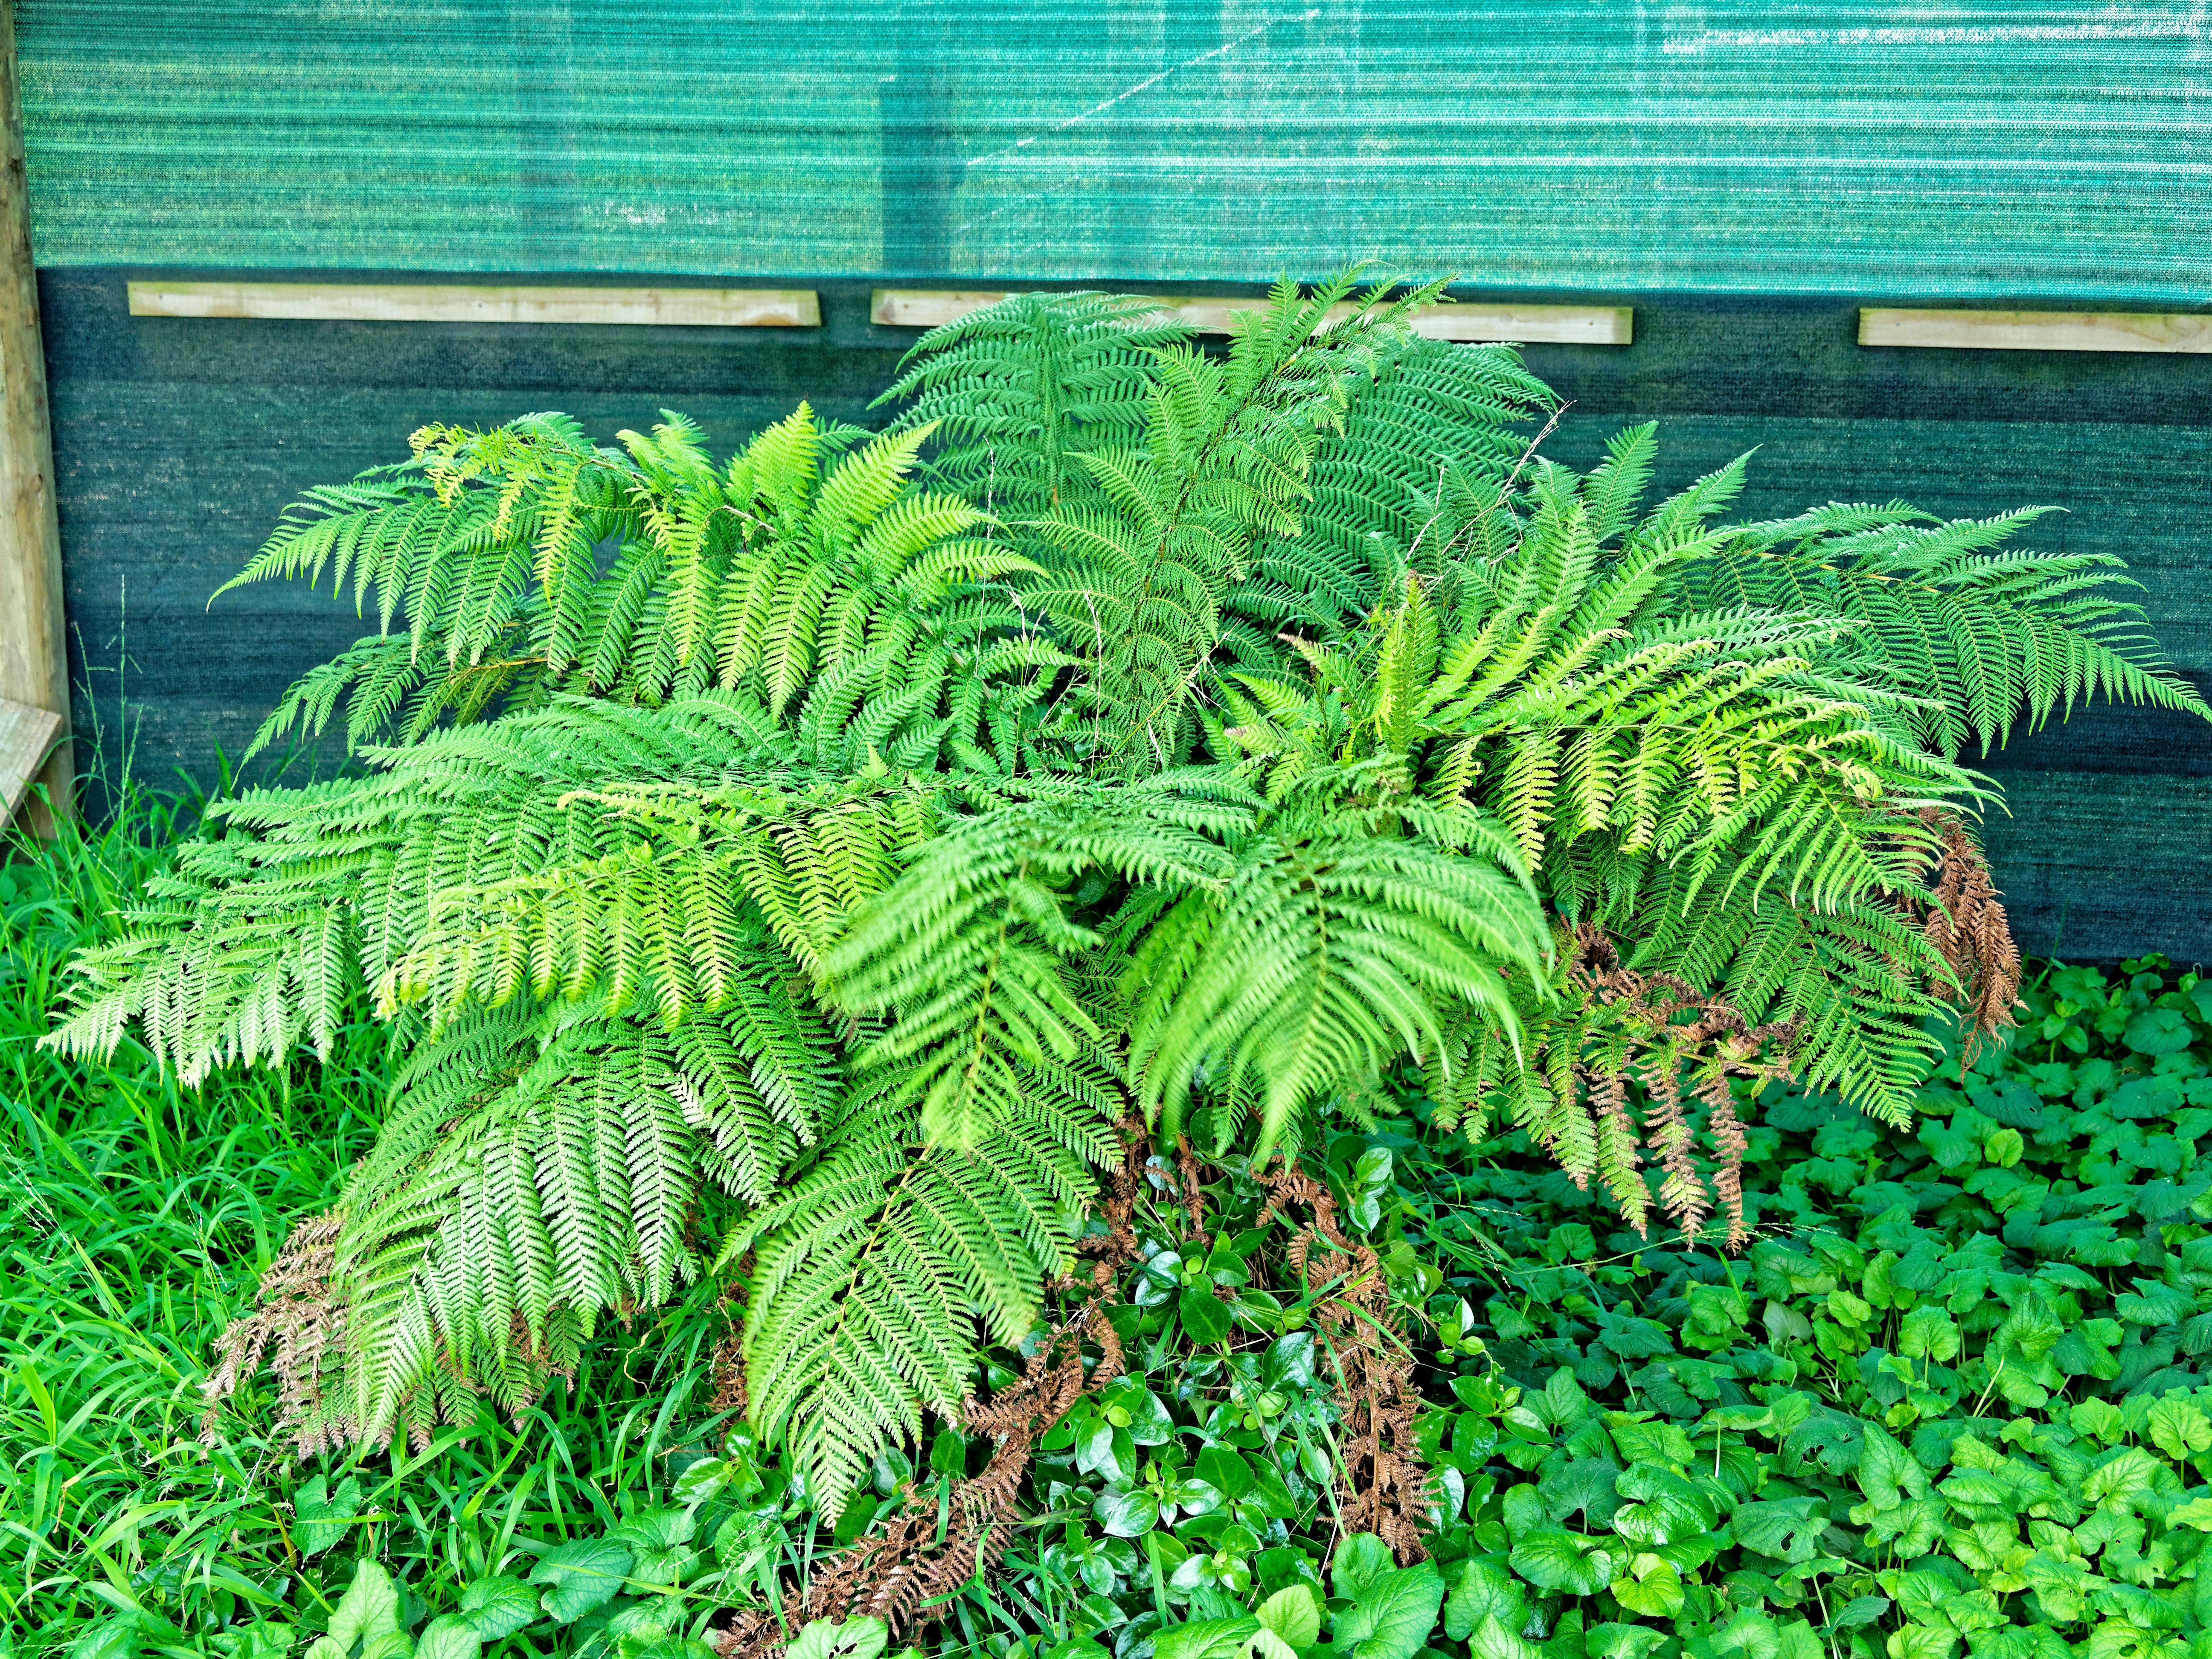 This should be Tree-fern.jpeg.  Is it missing?